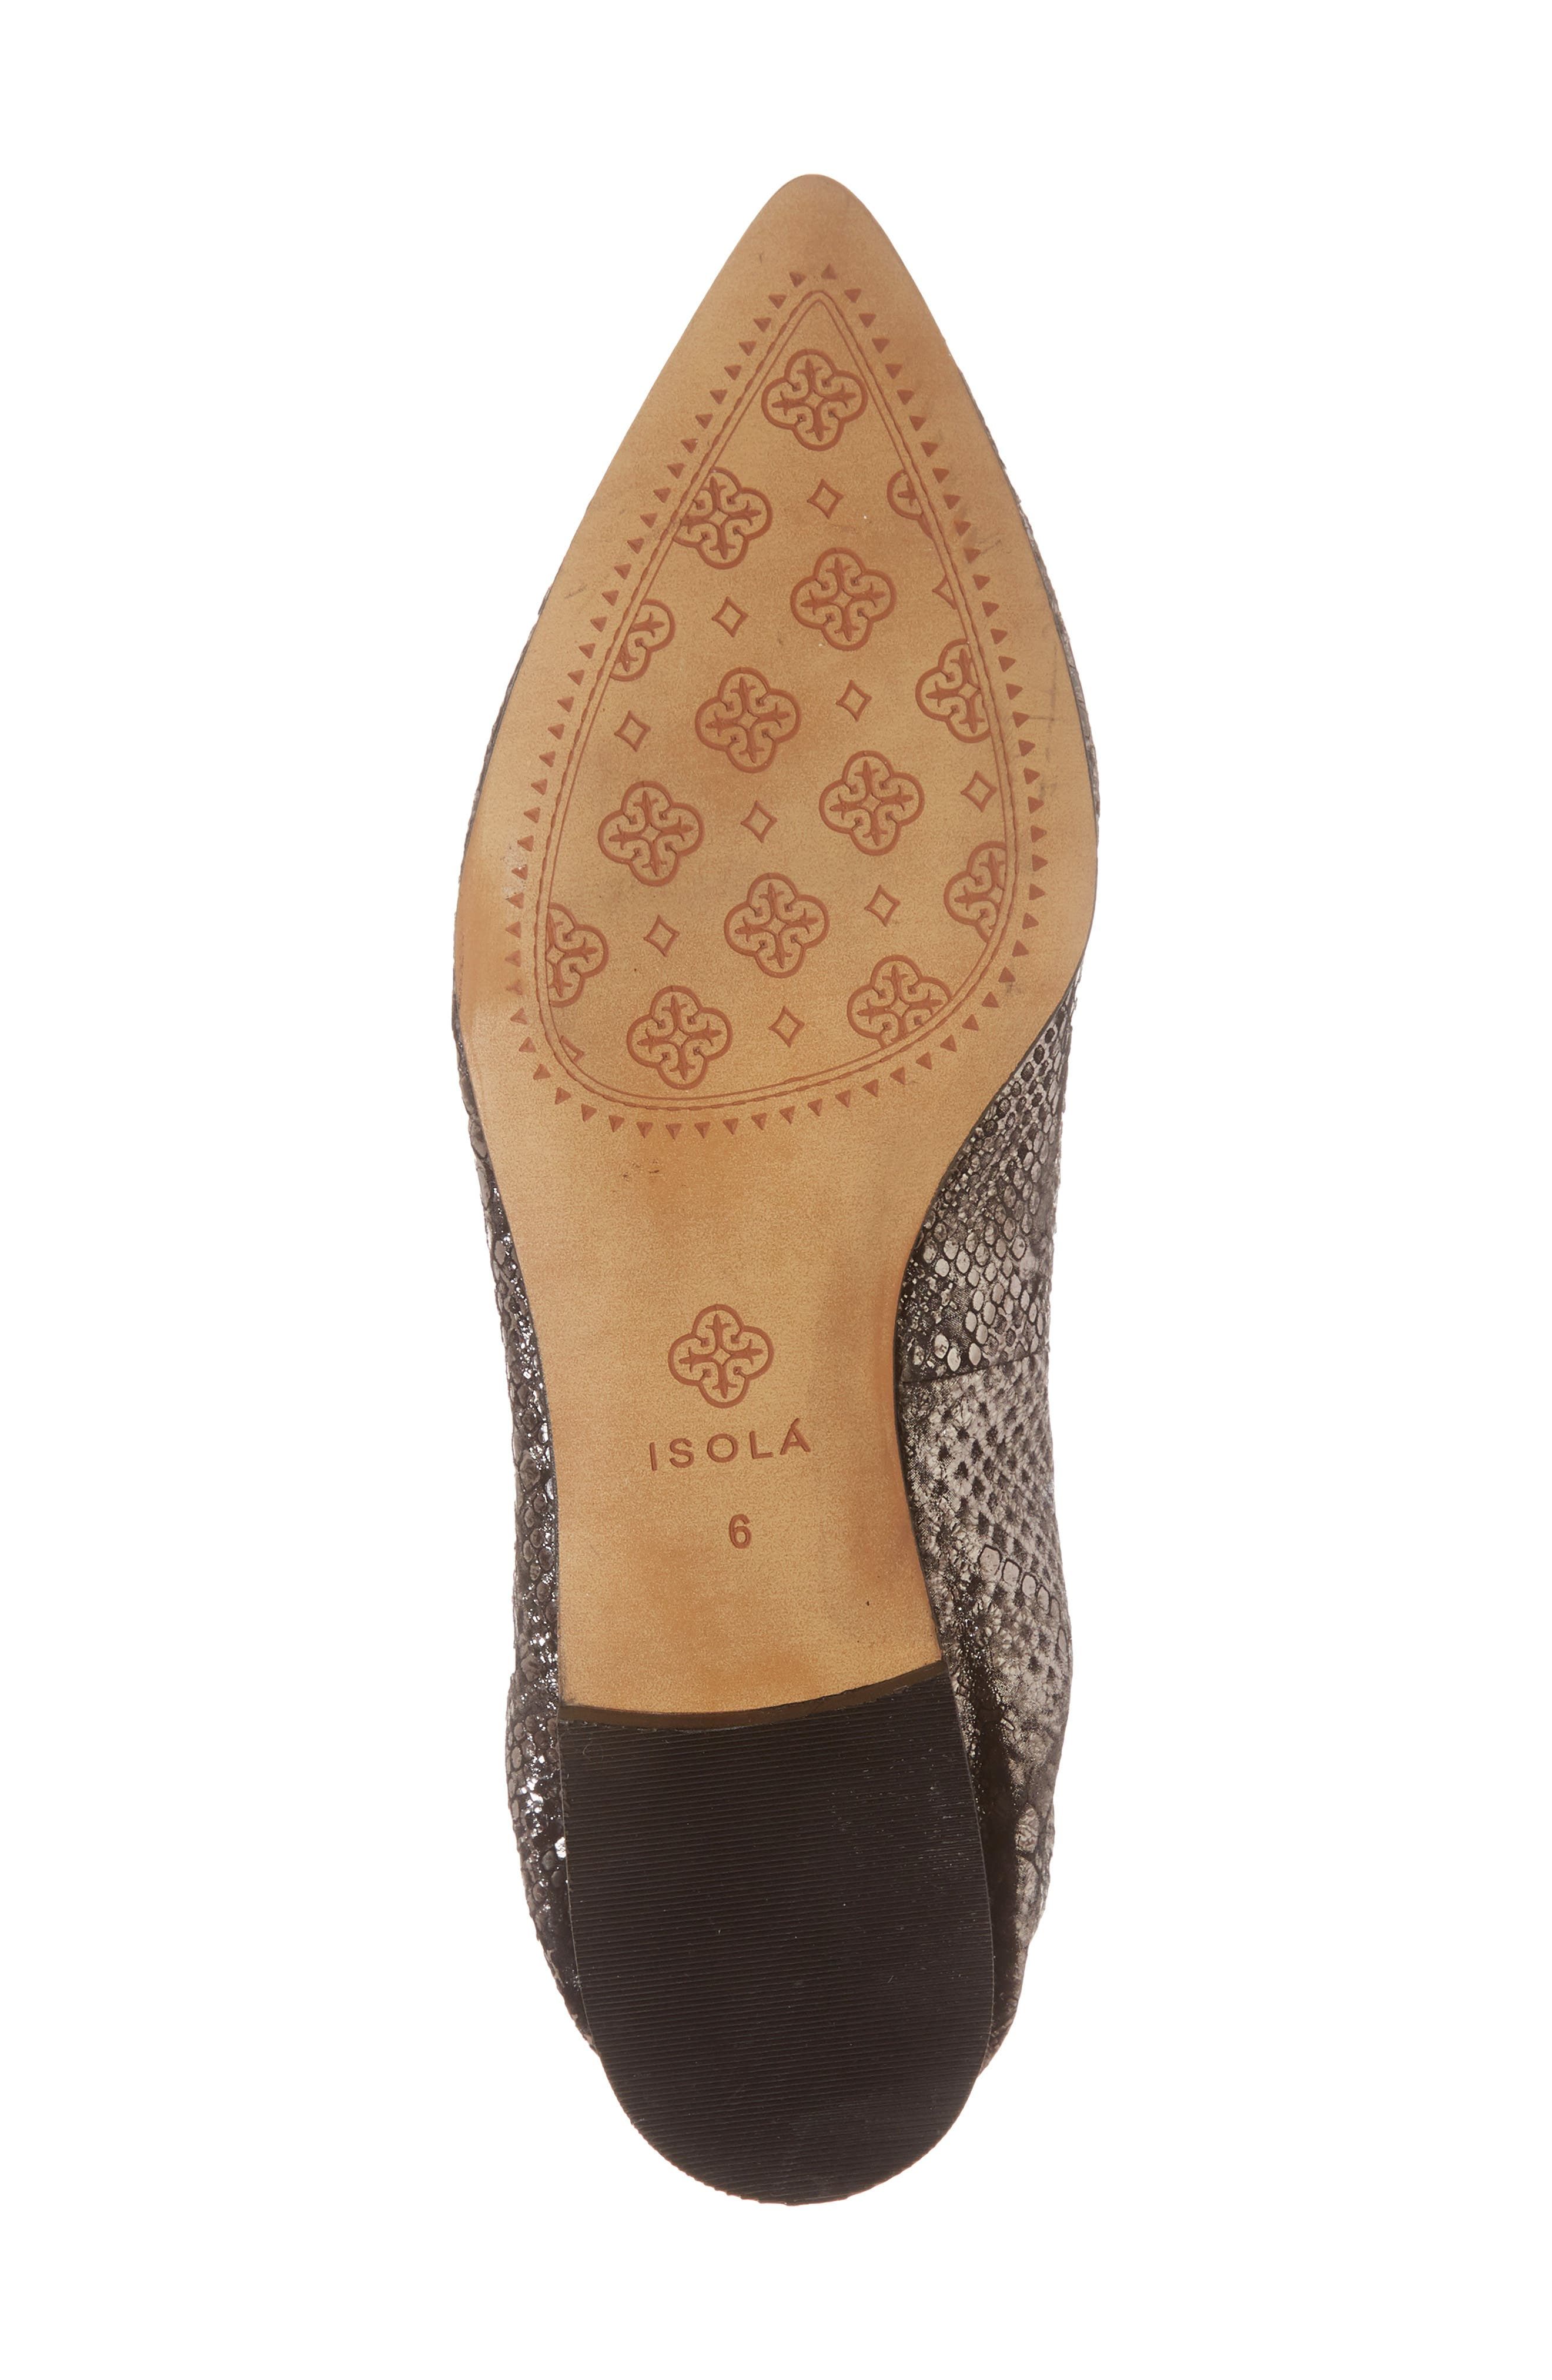 Isola Padra Pointy Toe Flat,                             Alternate thumbnail 6, color,                             PEWTER LEATHER